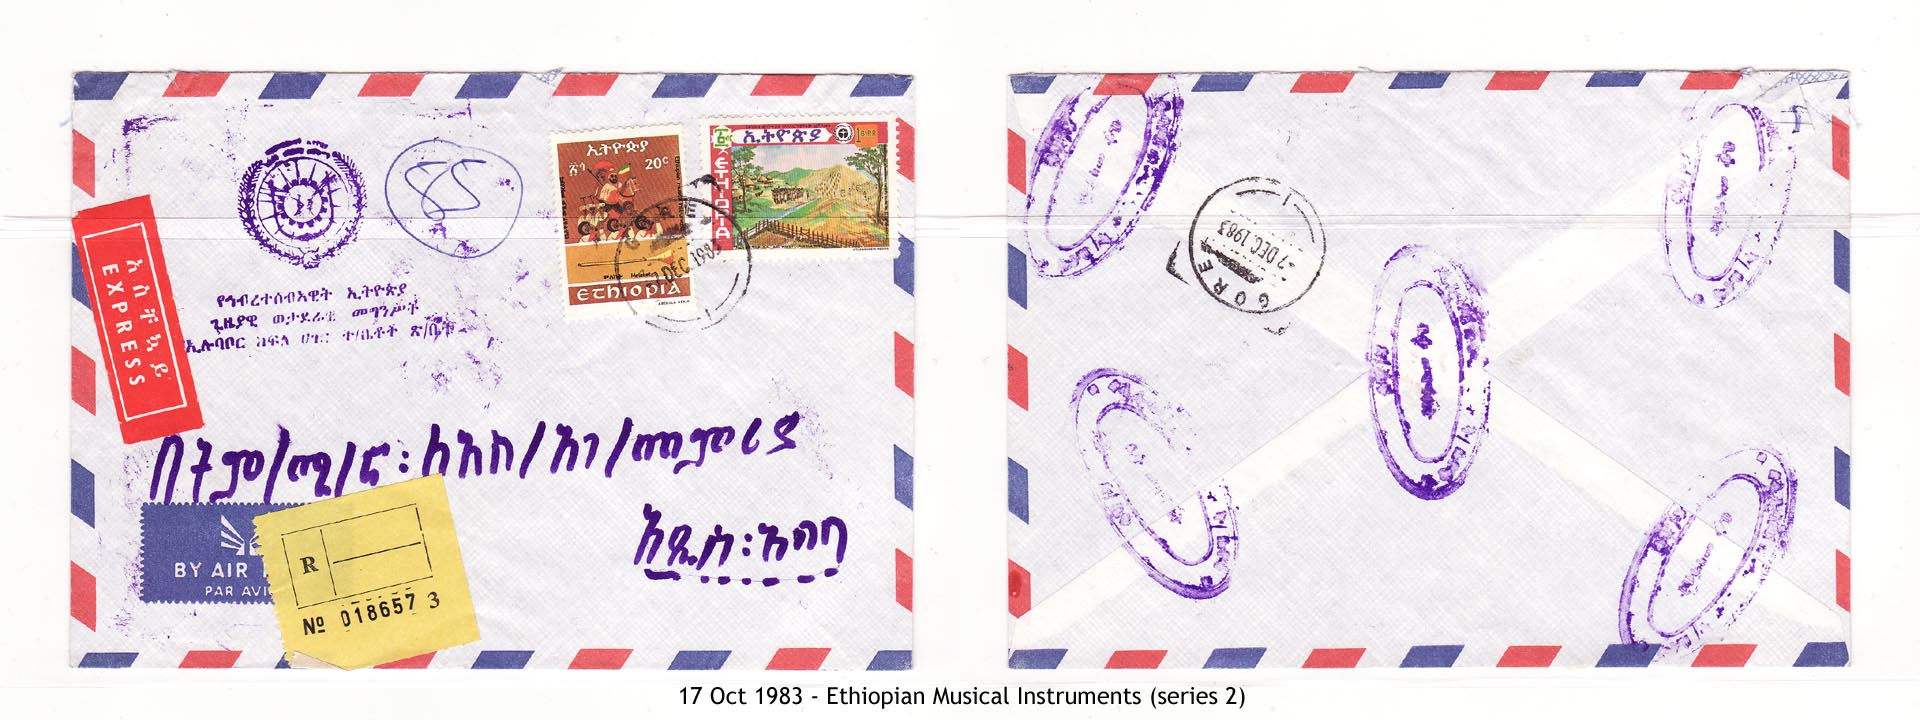 19831017 - Ethiopian Musical Instruments (series 2)